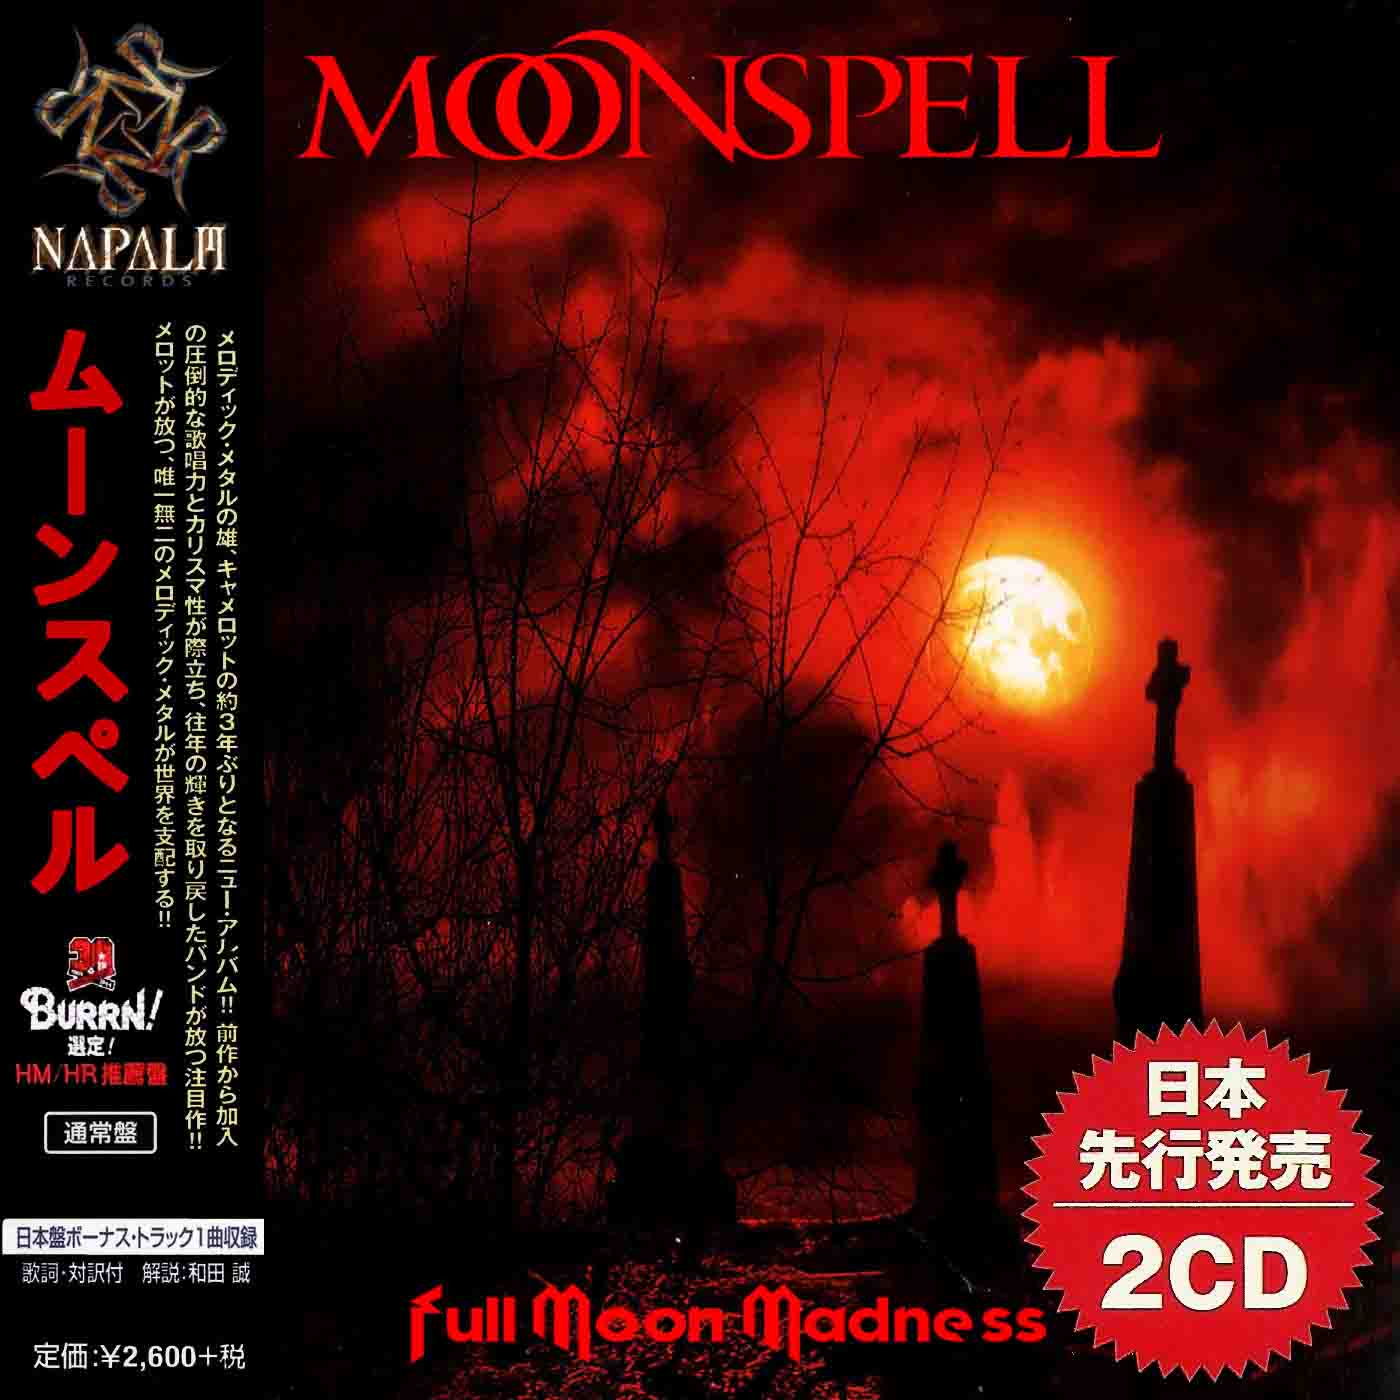 Moonspell - Full Moon Madness (Compilation) (Japanese Edition)